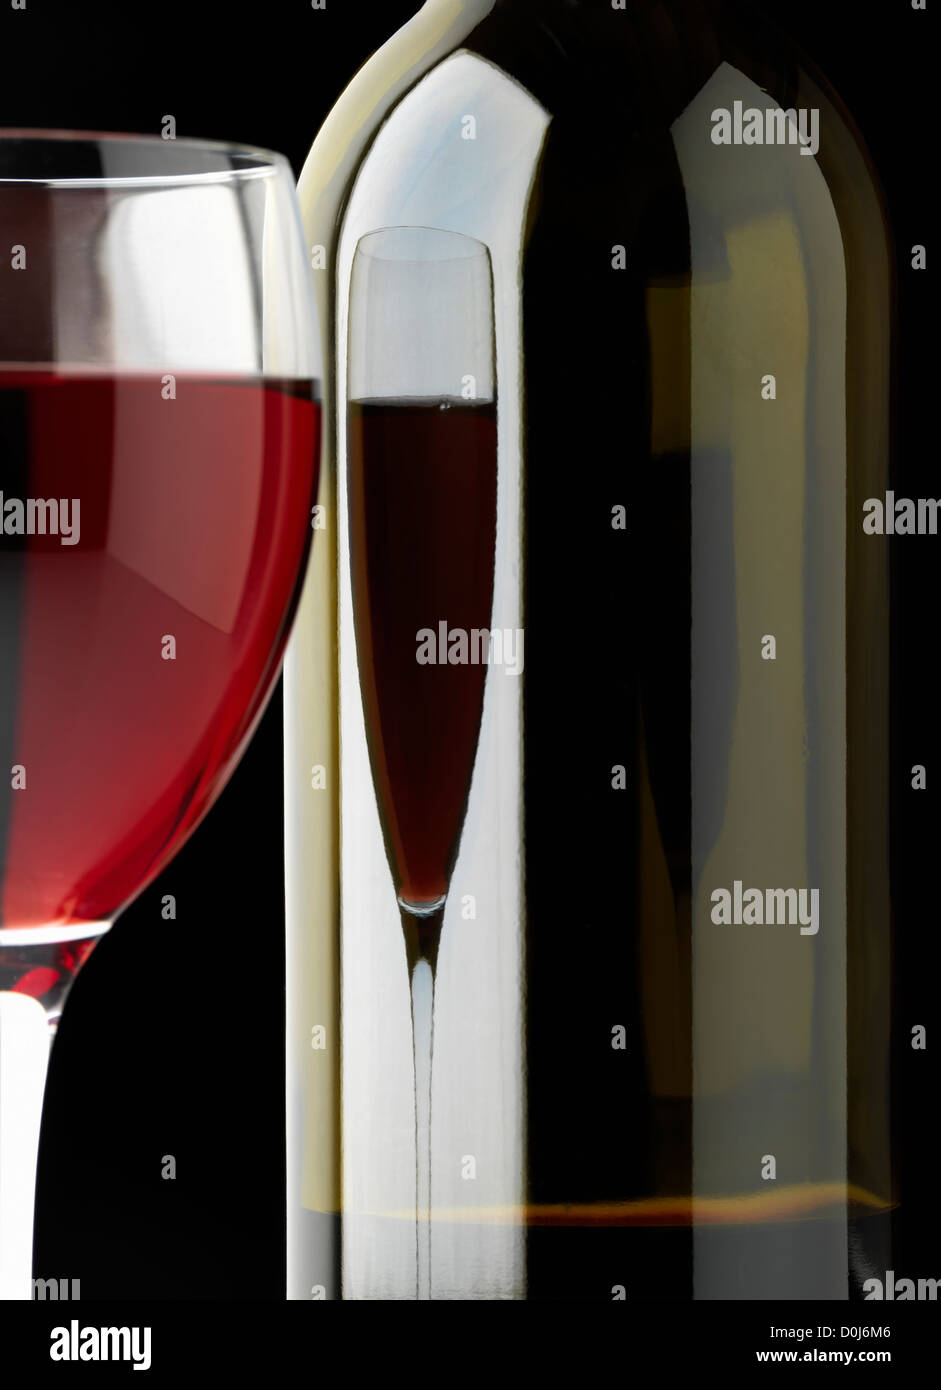 glass of red wine and wine bottle - Stock Image